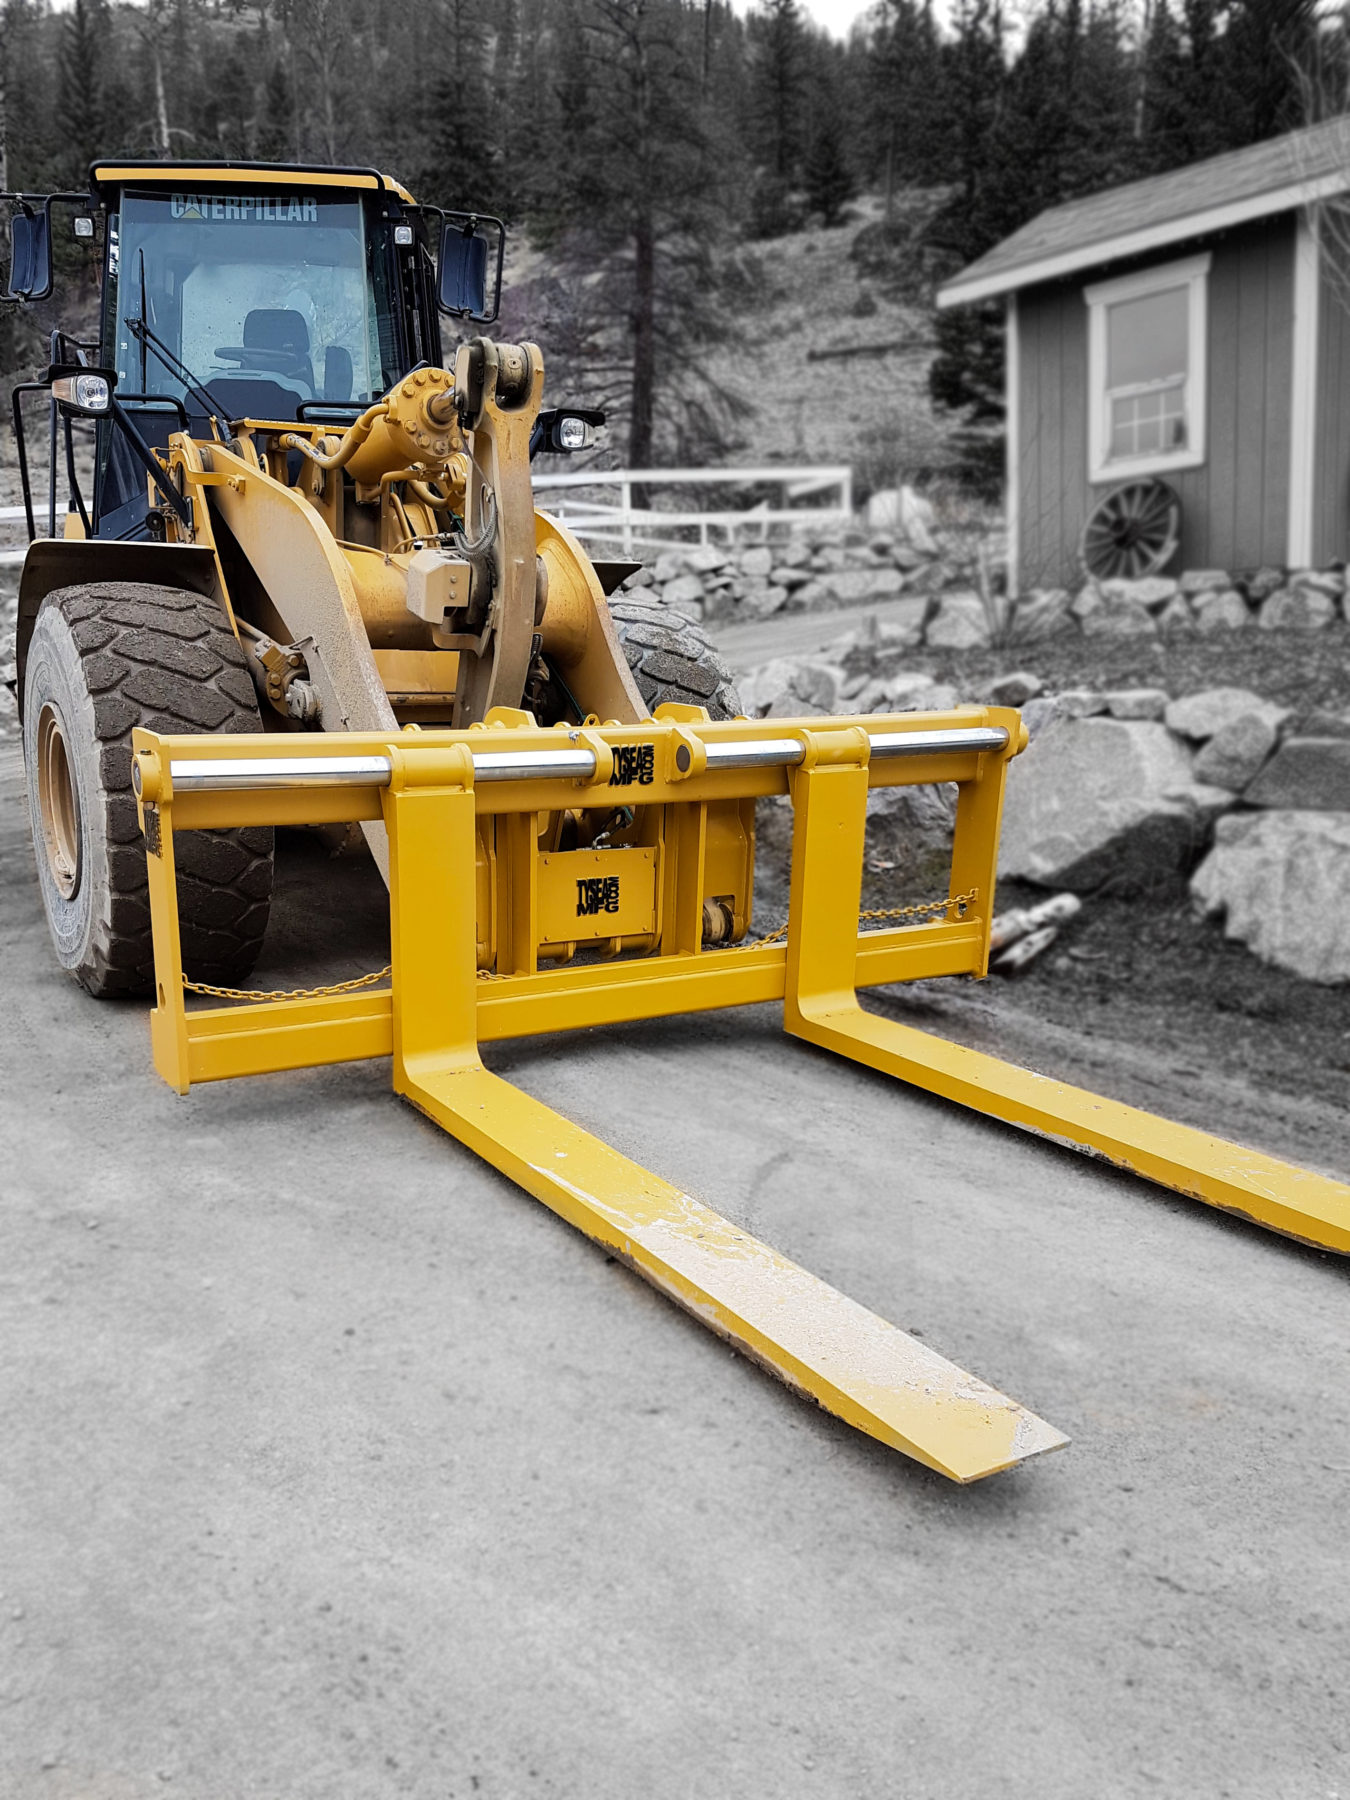 Pallet forks manufactured to customer specs by Tysea Mfg and installed on a wheel loader